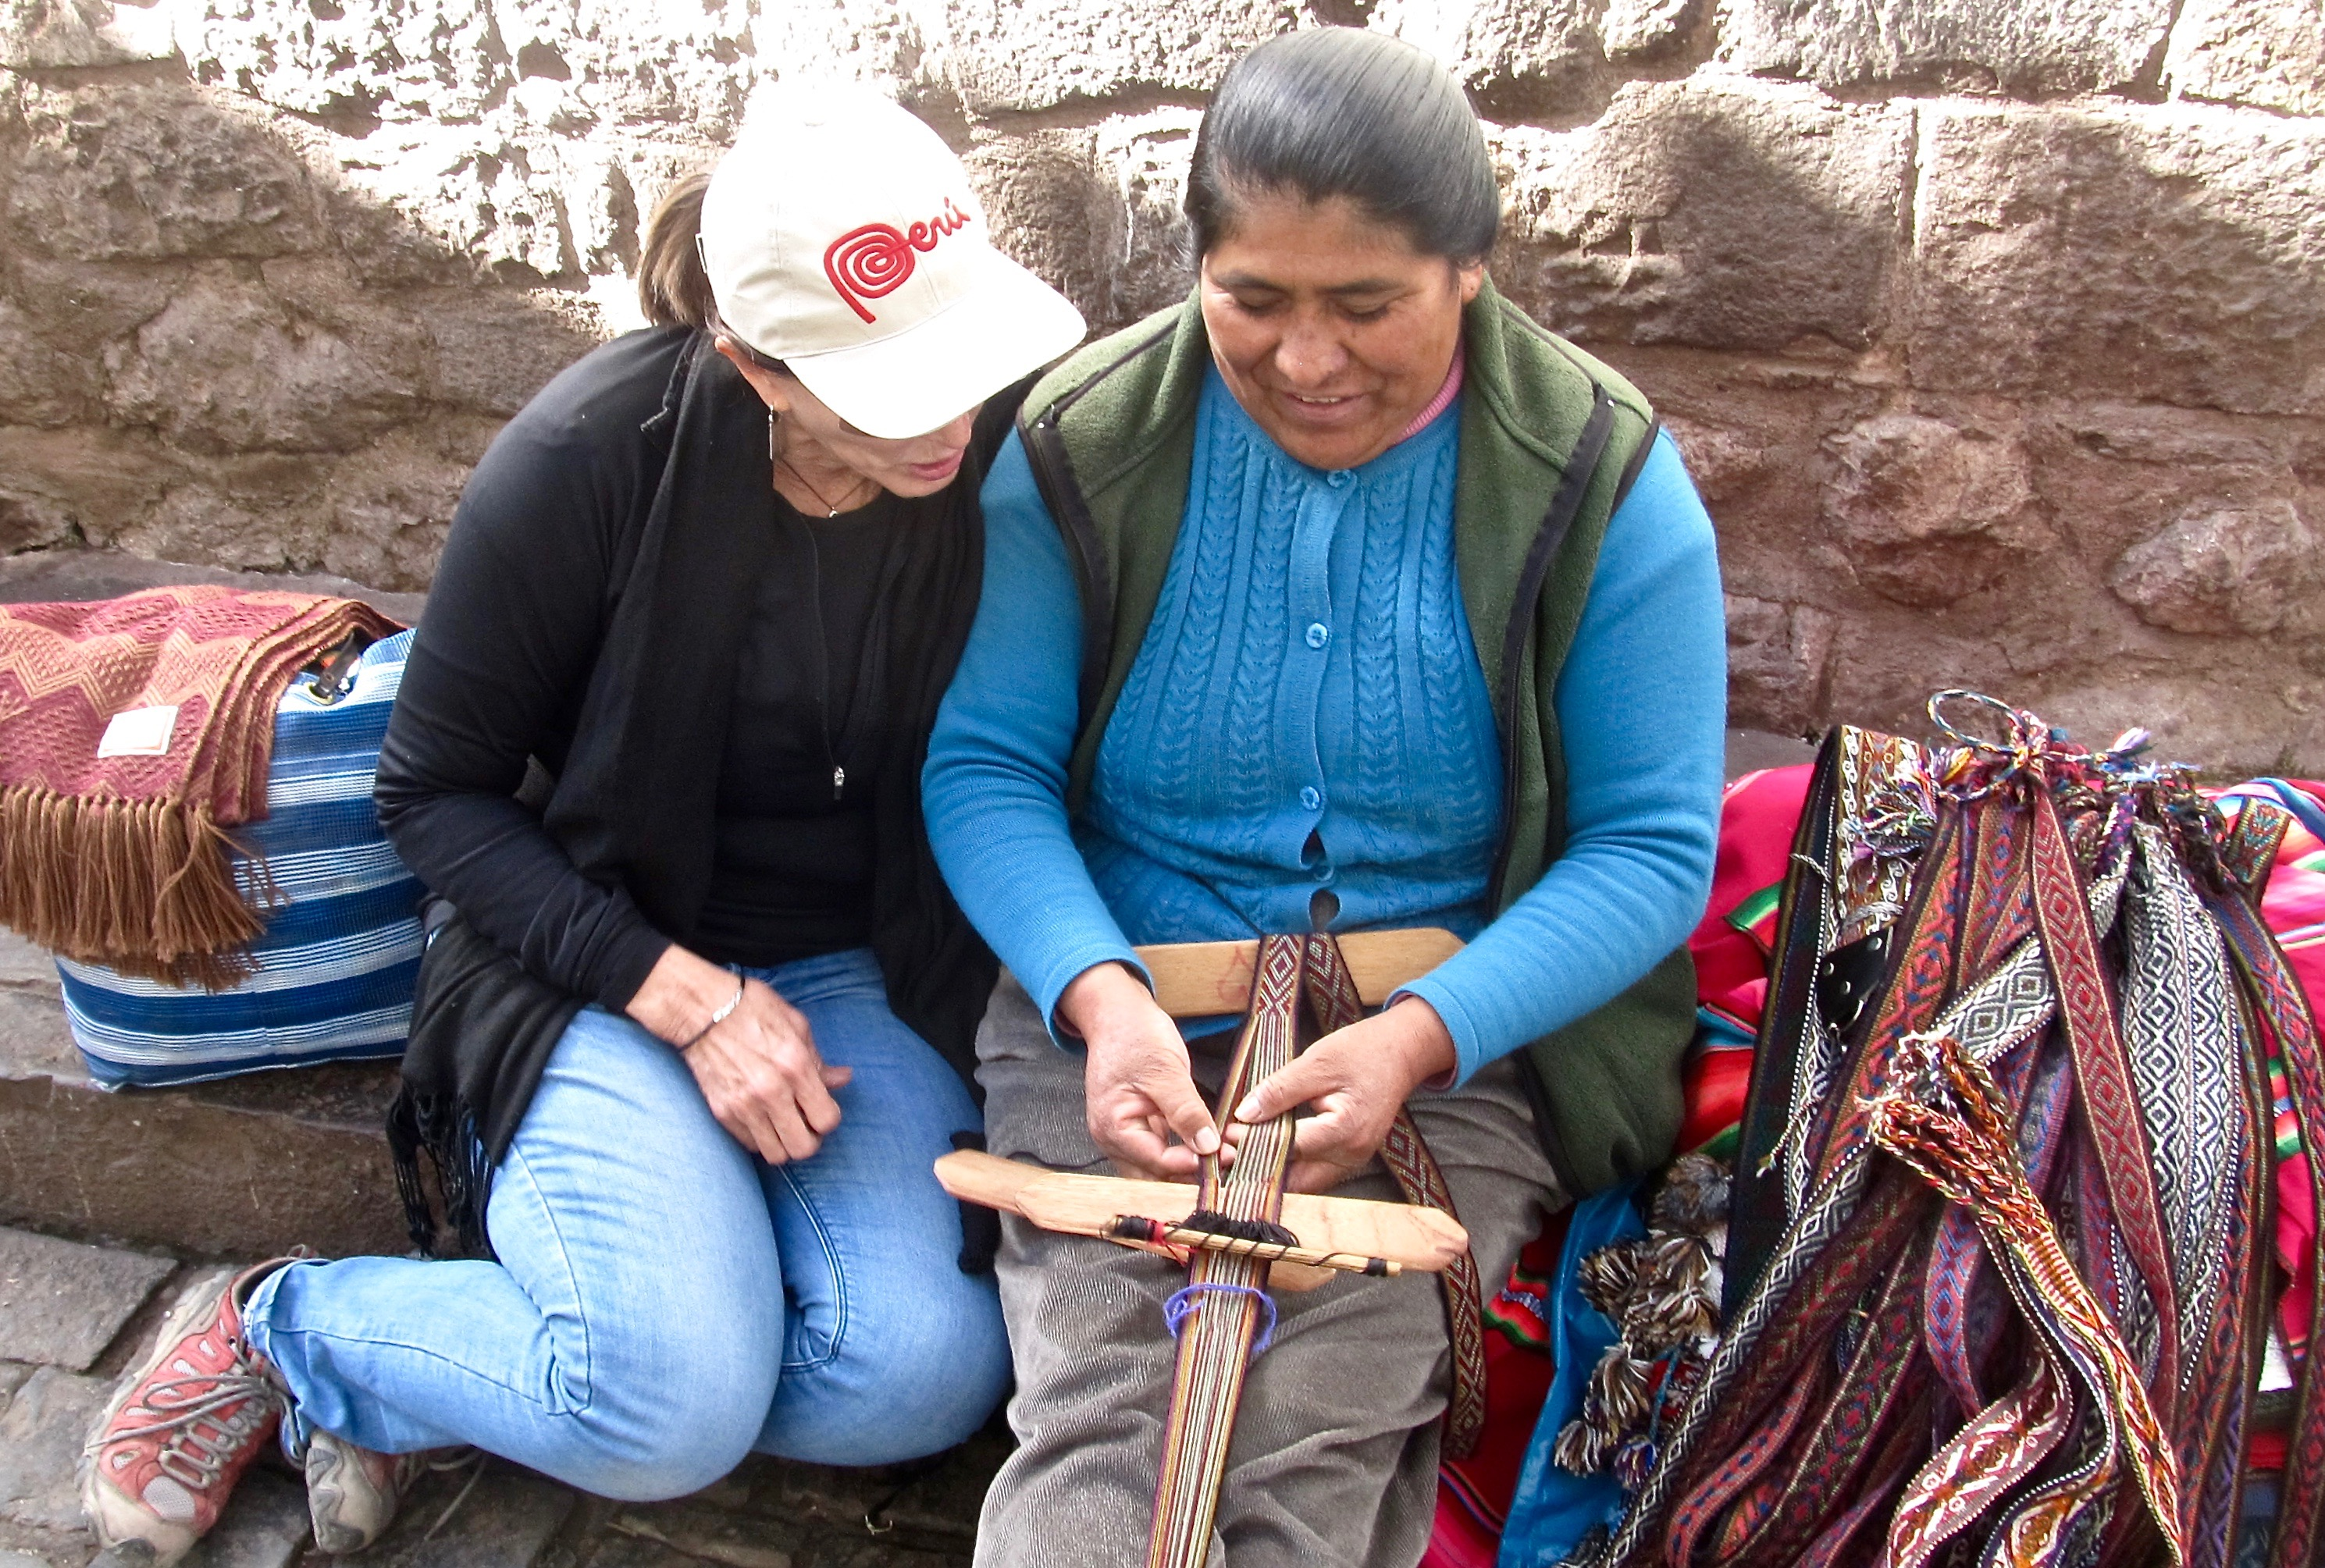 Every day Maria sits on the curb in Cusco and weaves. I sat down with her. I bought a belt. We became friends.